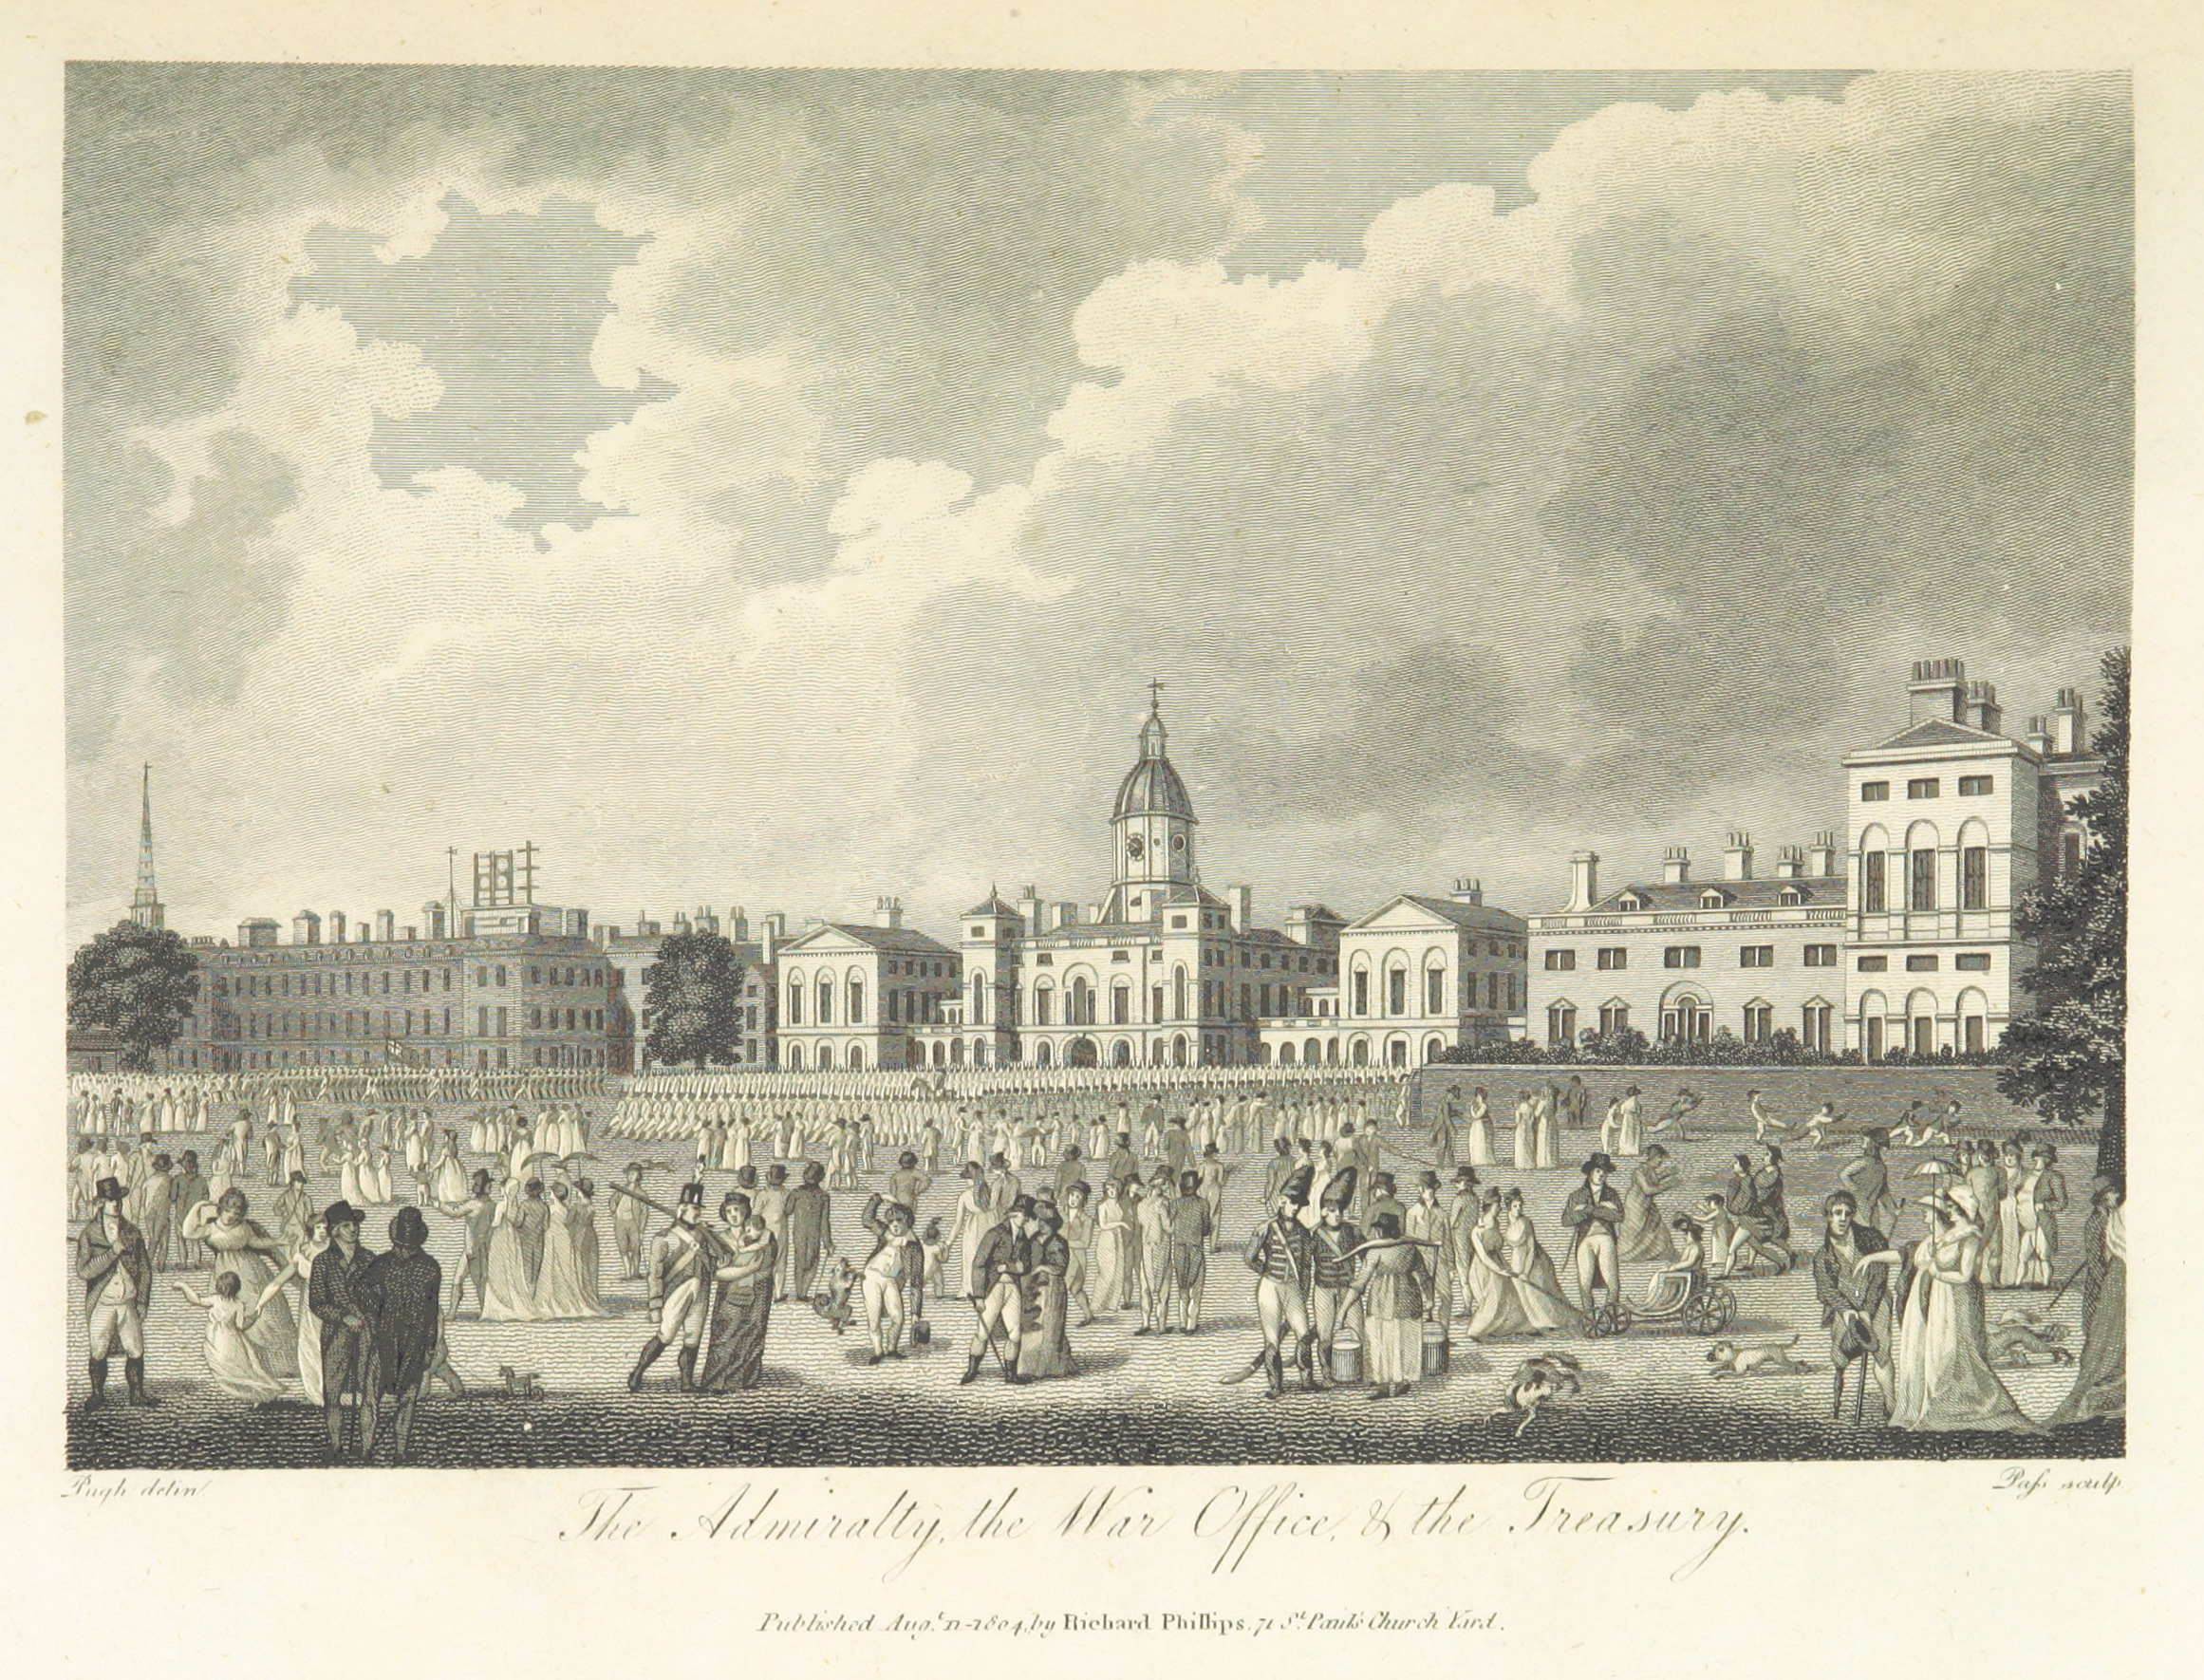 Phillips(1804)_p281_-_The_Admiralty,_the_War_Office_and_the_Treasury